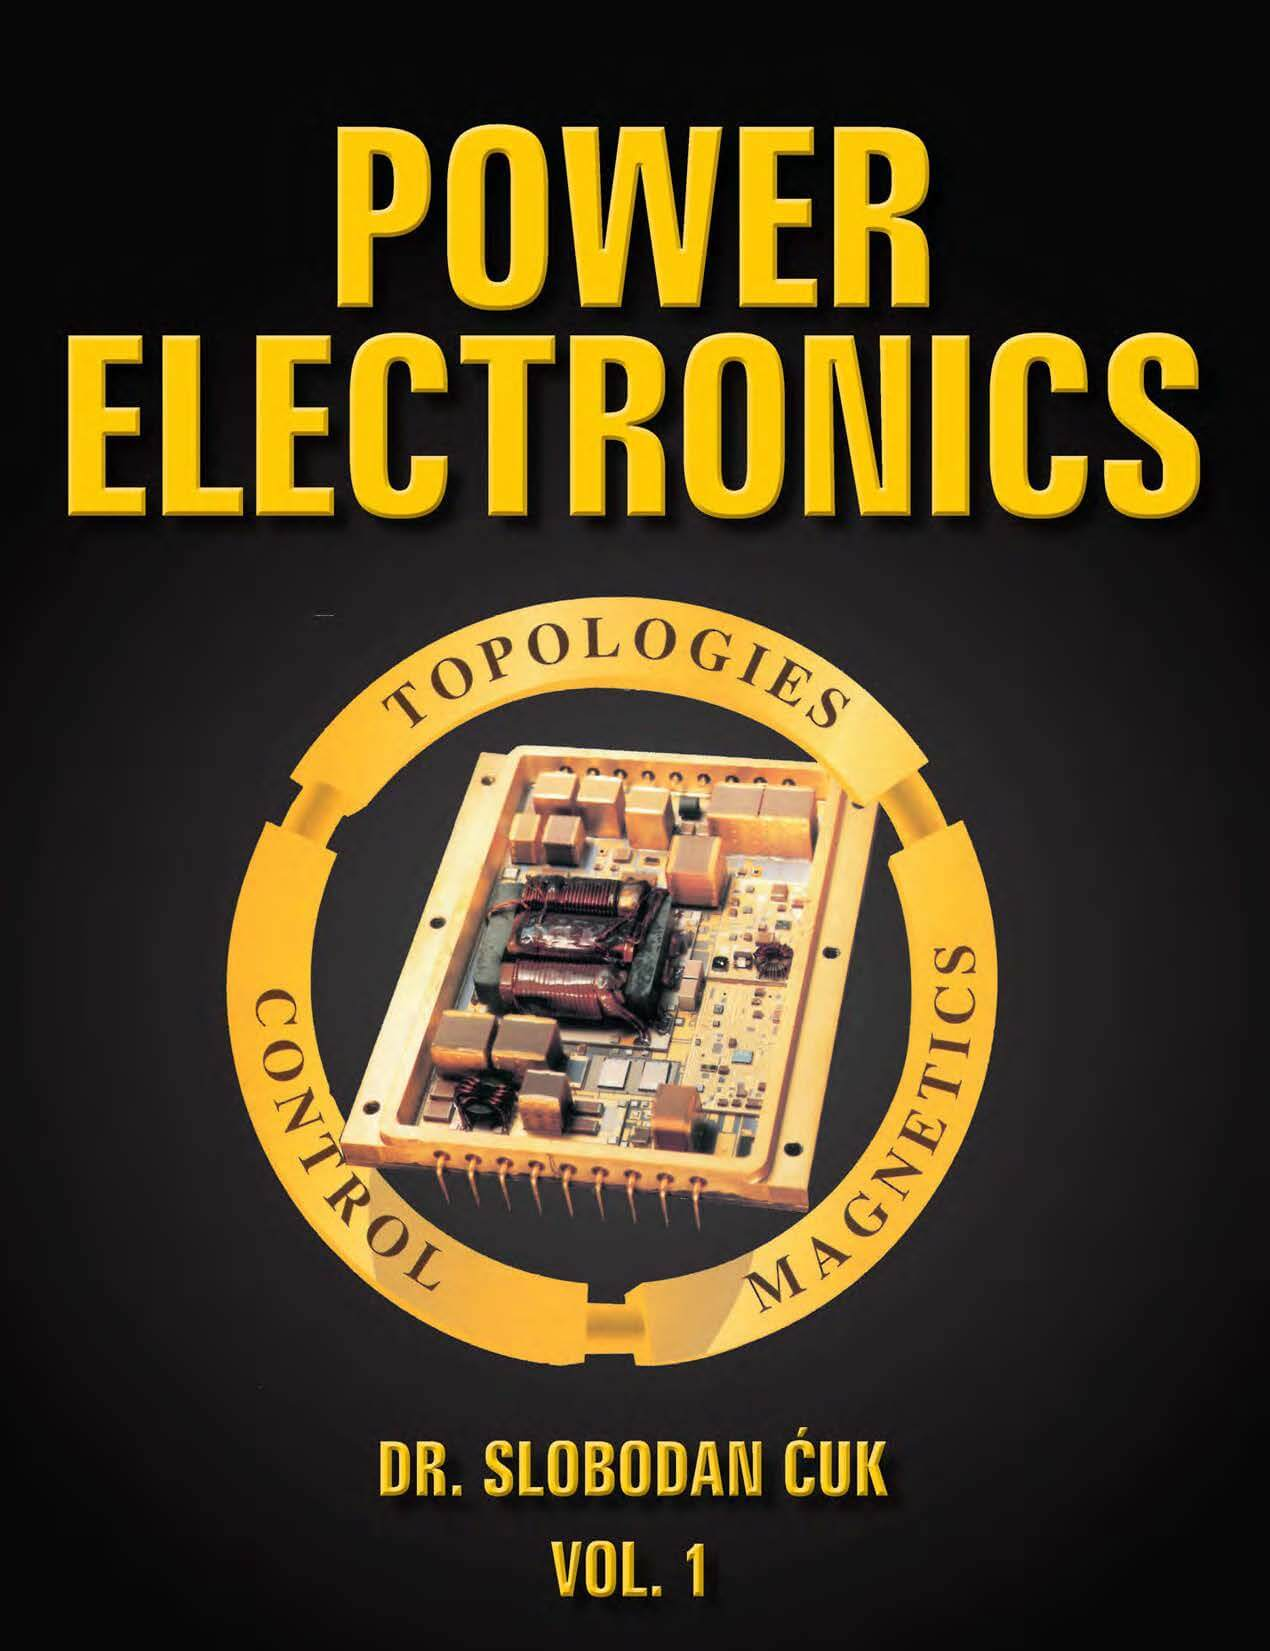 Power Electronics Vol. 1